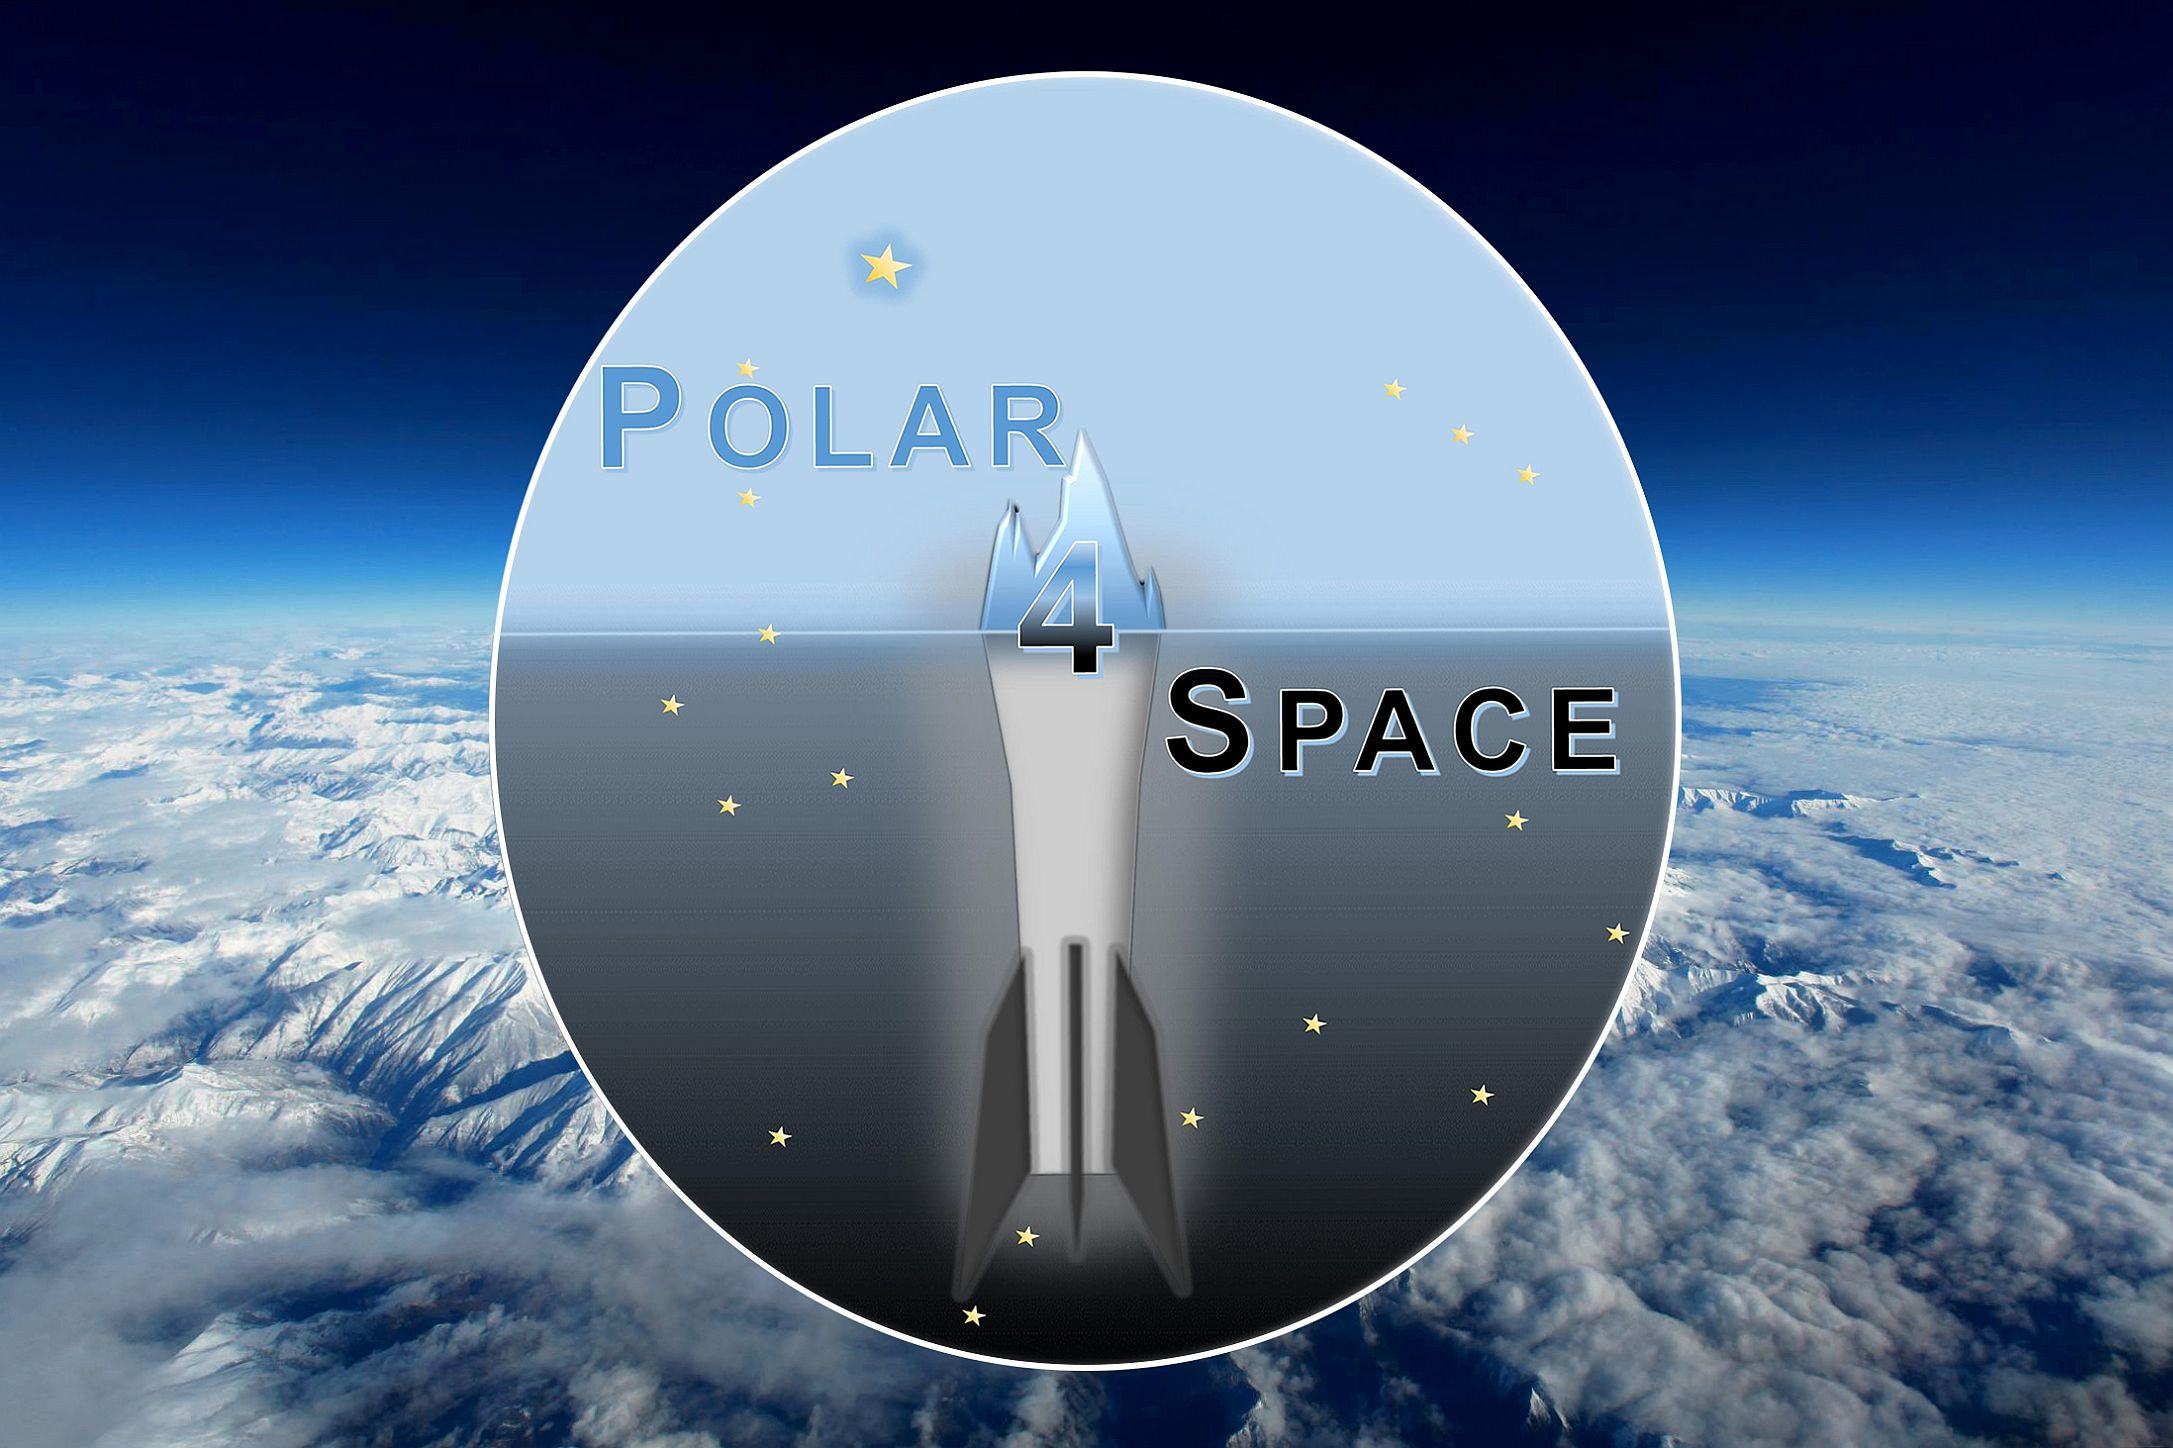 Polar4Space Conference